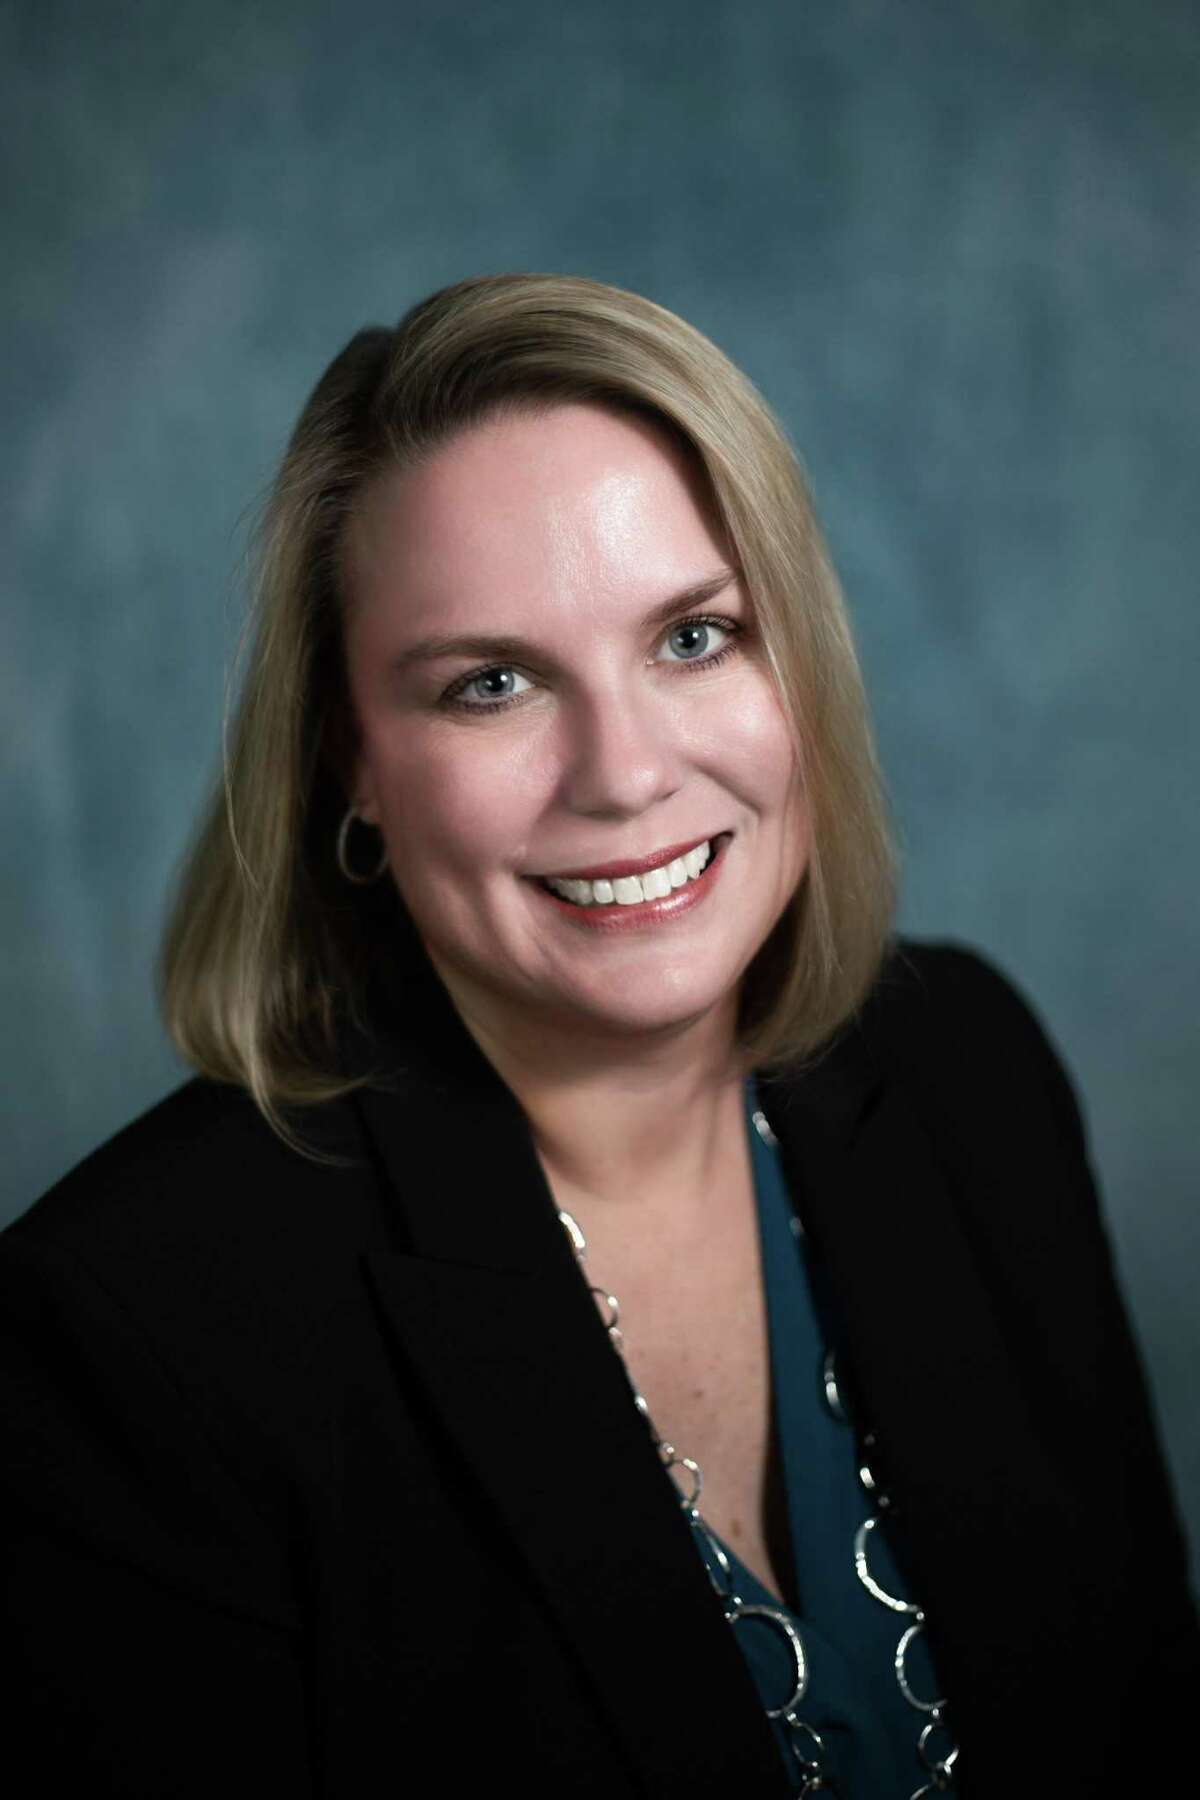 Starting Feb. 1, 2021, Ann Marie Ronsman will be taking over as the Executive Director of CASA Child Advocates, succeeding Ann McAlpin, who is retiring after nearly 10 years leading the organization.